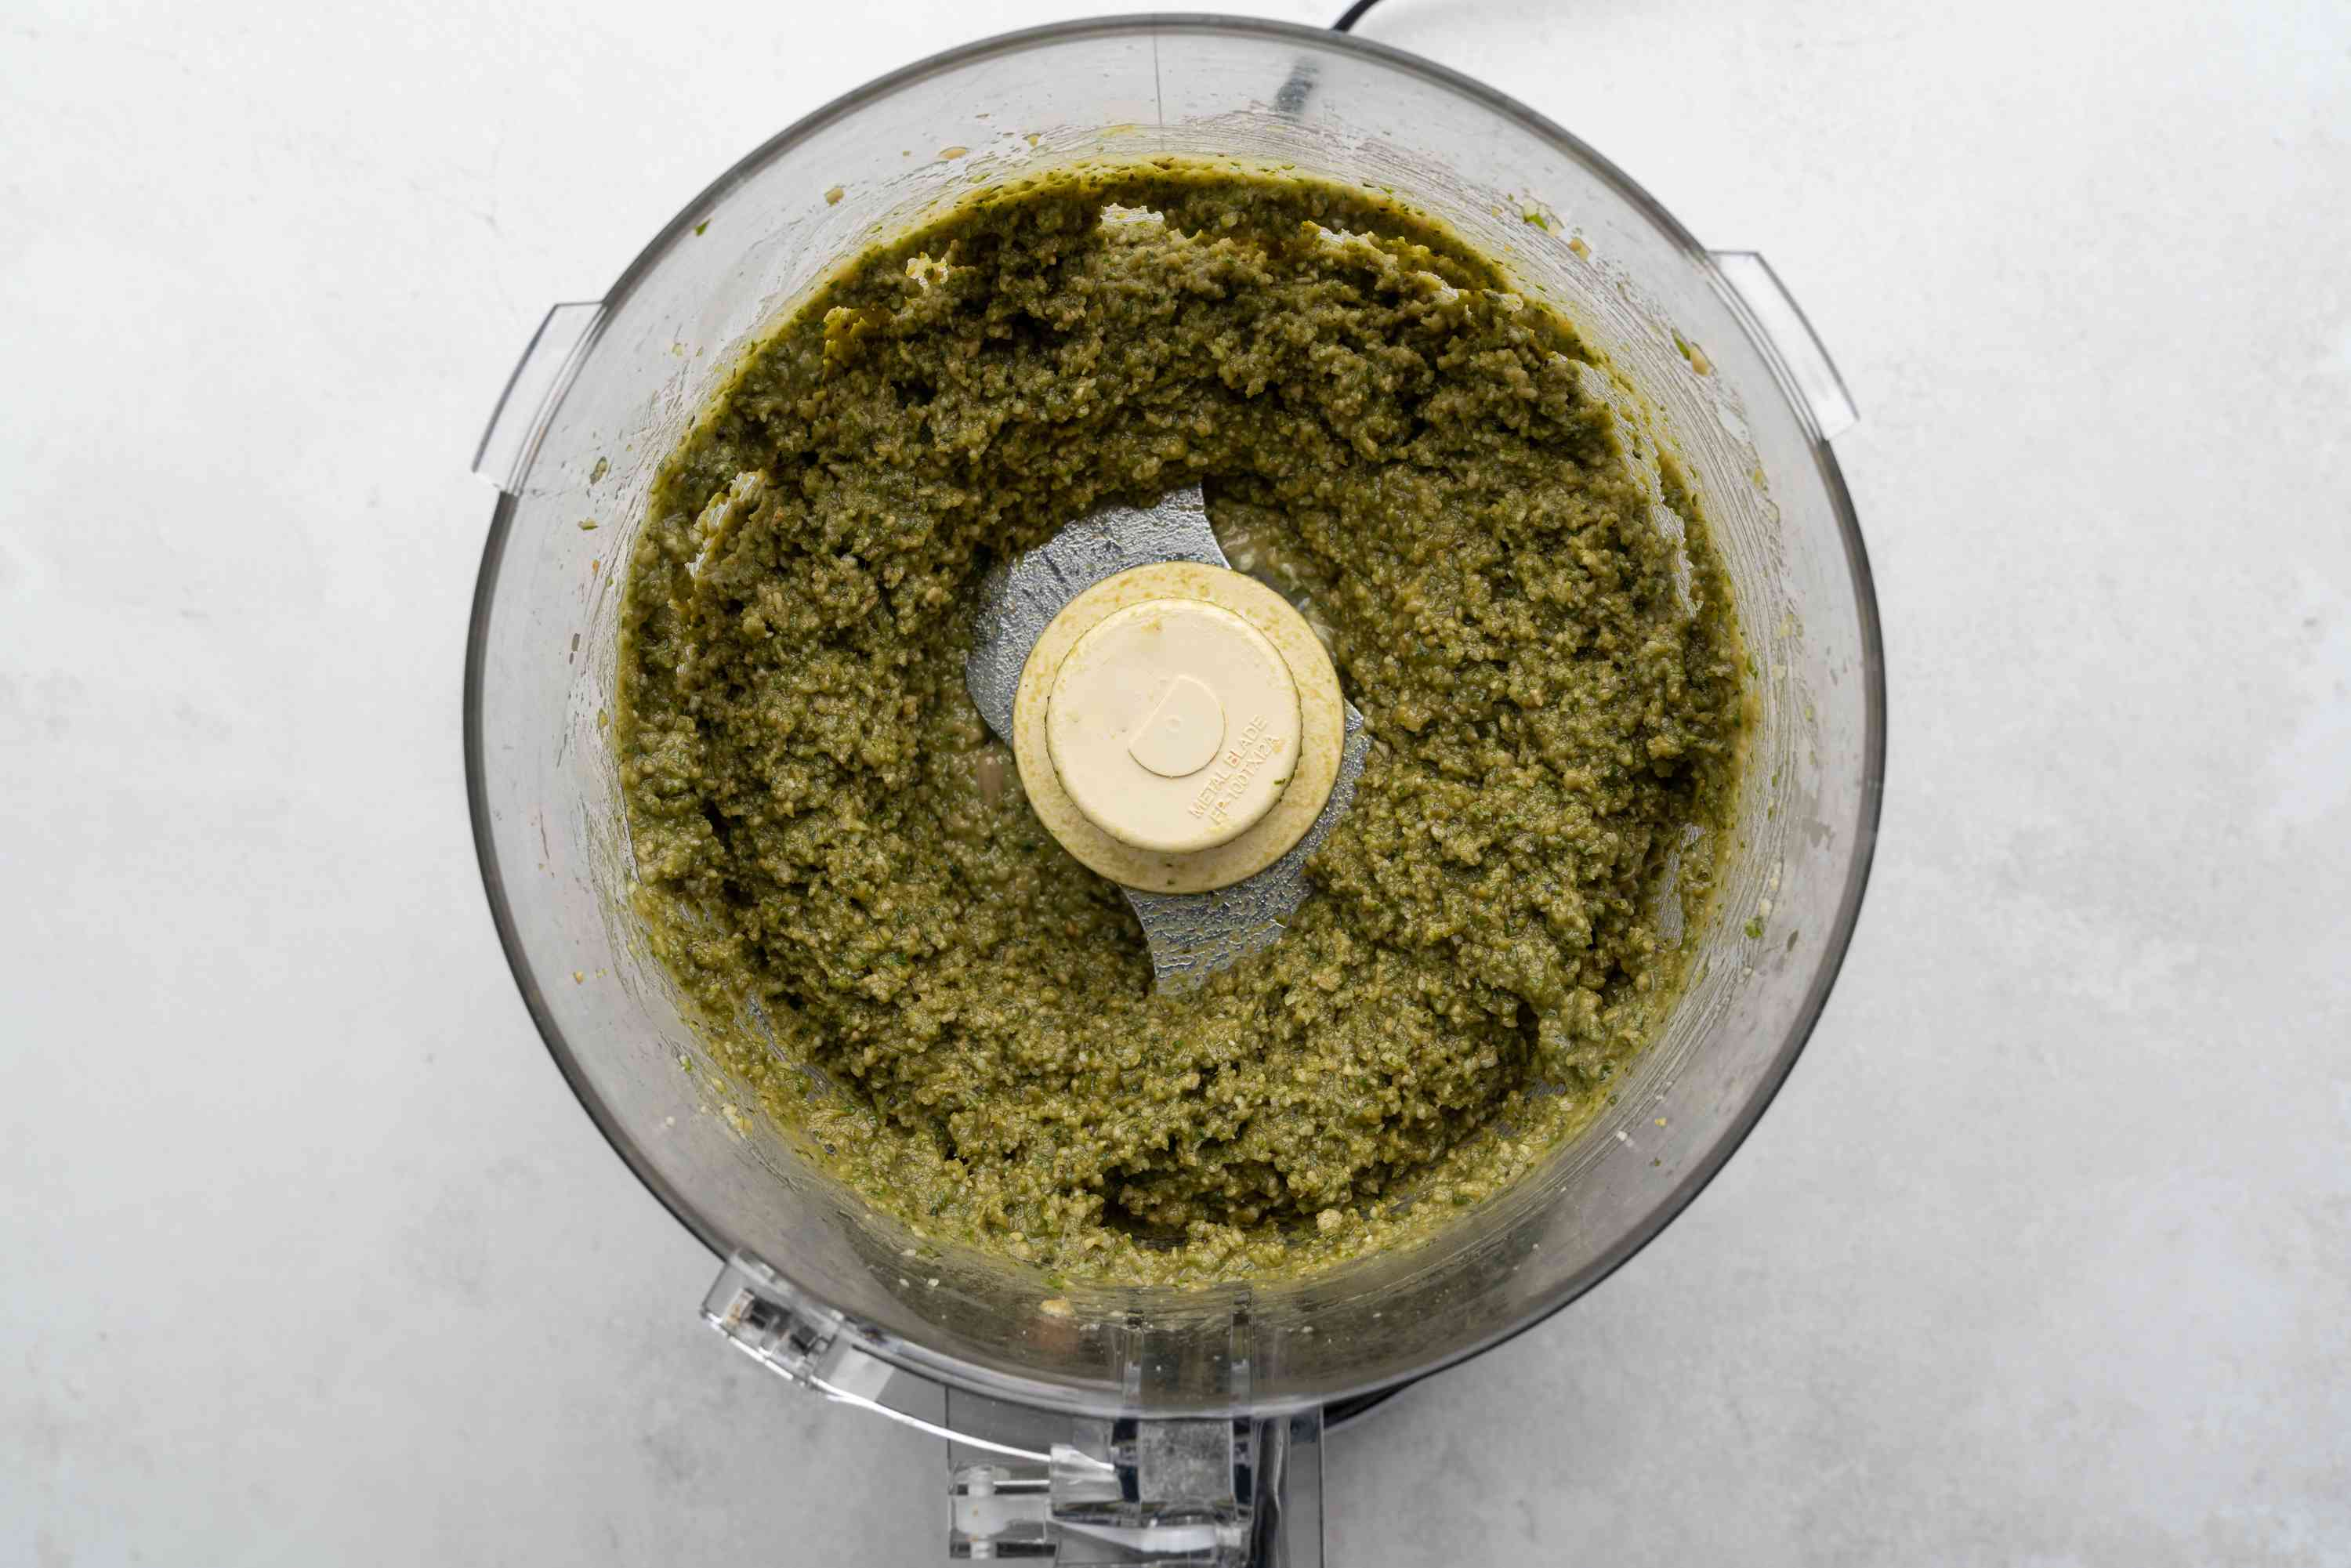 Place basil, sunflower seeds, olive oil, Parmesan, butter, and garlic in the bowl of a food processor